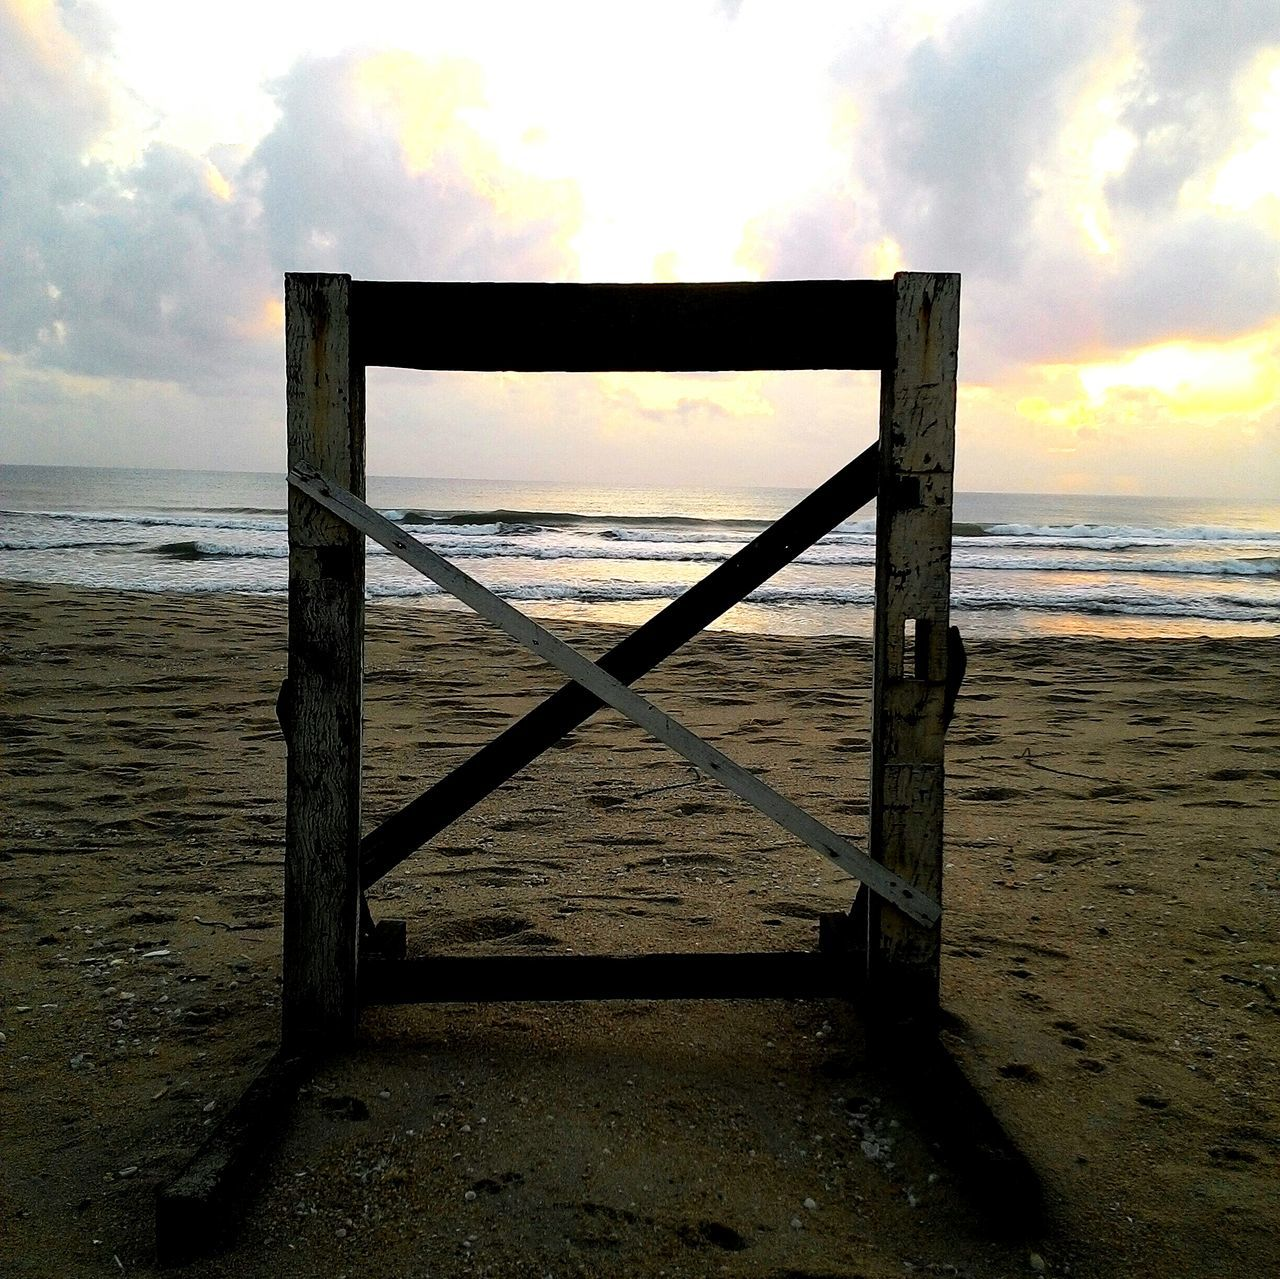 sea, water, beach, horizon over water, sky, tranquility, sand, nature, tranquil scene, cloud - sky, scenics, wood - material, beauty in nature, outdoors, no people, day, sunset, close-up